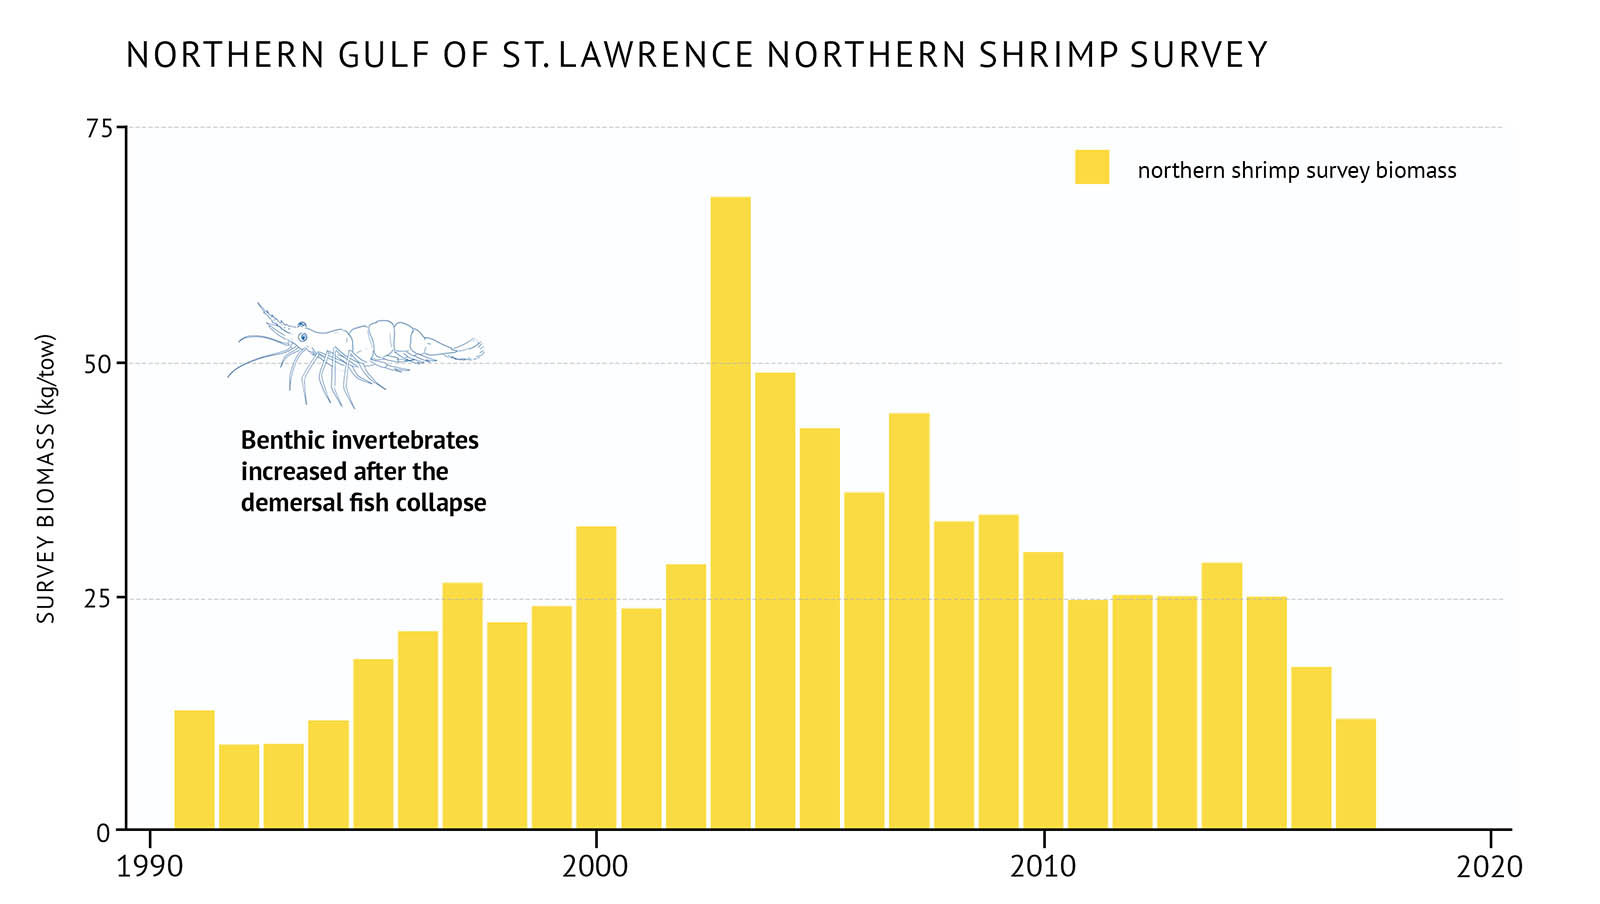 "Figure 26: Survey biomass for northern shrimp in the northern Gulf of St. Lawrence. A bar graph illustrates the survey biomass for northern shrimp in the northern Gulf of St. Lawrence. Text above the graph says ""Northern Gulf of St. Lawrence Northern Shrimp Survey"". The vertical axis on the left shows the survey biomass in units of kilograms per tow from 0 to 75 in increments of 25. The bottom horizontal axis shows the years between 1990 and 2020 in 10 year increments. The biomass of northern shrimp is represented by yellow vertical bars. A legend appears on the right. The biomass increases in the 1990s and peaks in 2003 between 50 and 75 kilograms per tow. After 2005 it declines until the last year of data in 2017. A small, light blue outline-drawing of a shrimp is placed on the graph above the vertical bars to the left hand-side. Below the drawing there is text which states ""Benthic invertebrates increased after the demersal fish collapse""."